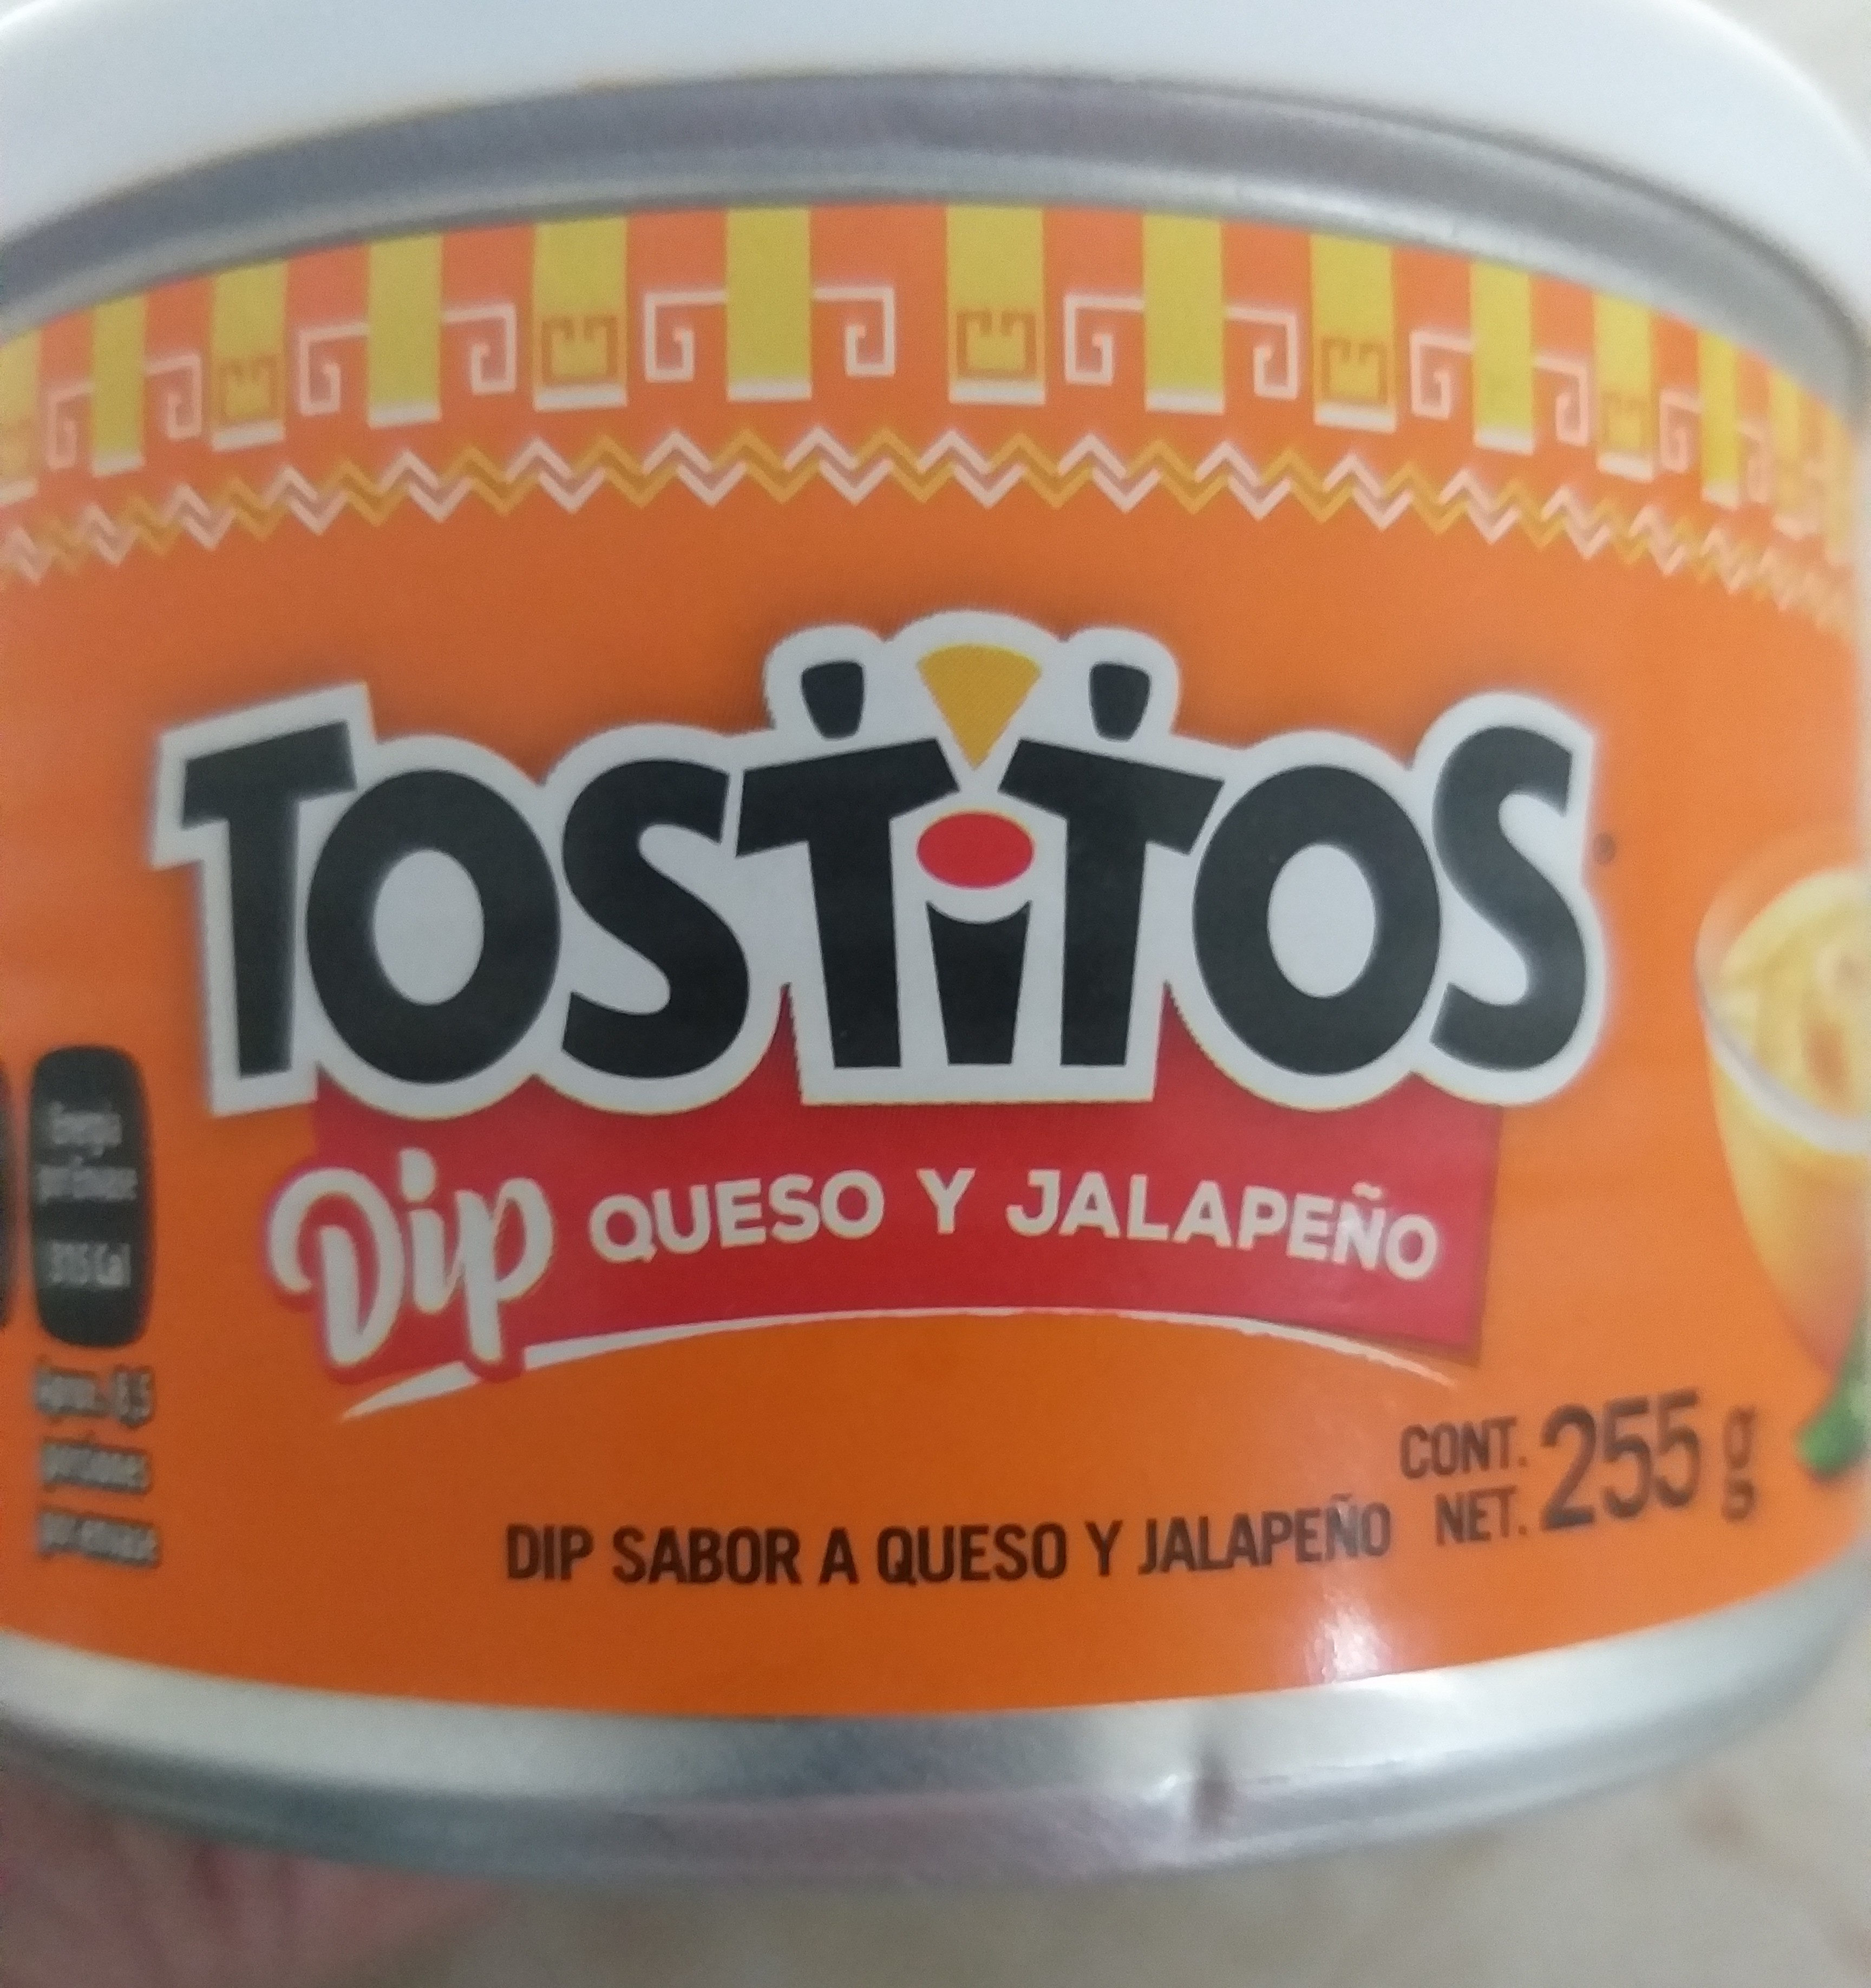 Pasteurized Process Cheese Food With Jalapenos, Queso Dip With Jalapenos - Product - en